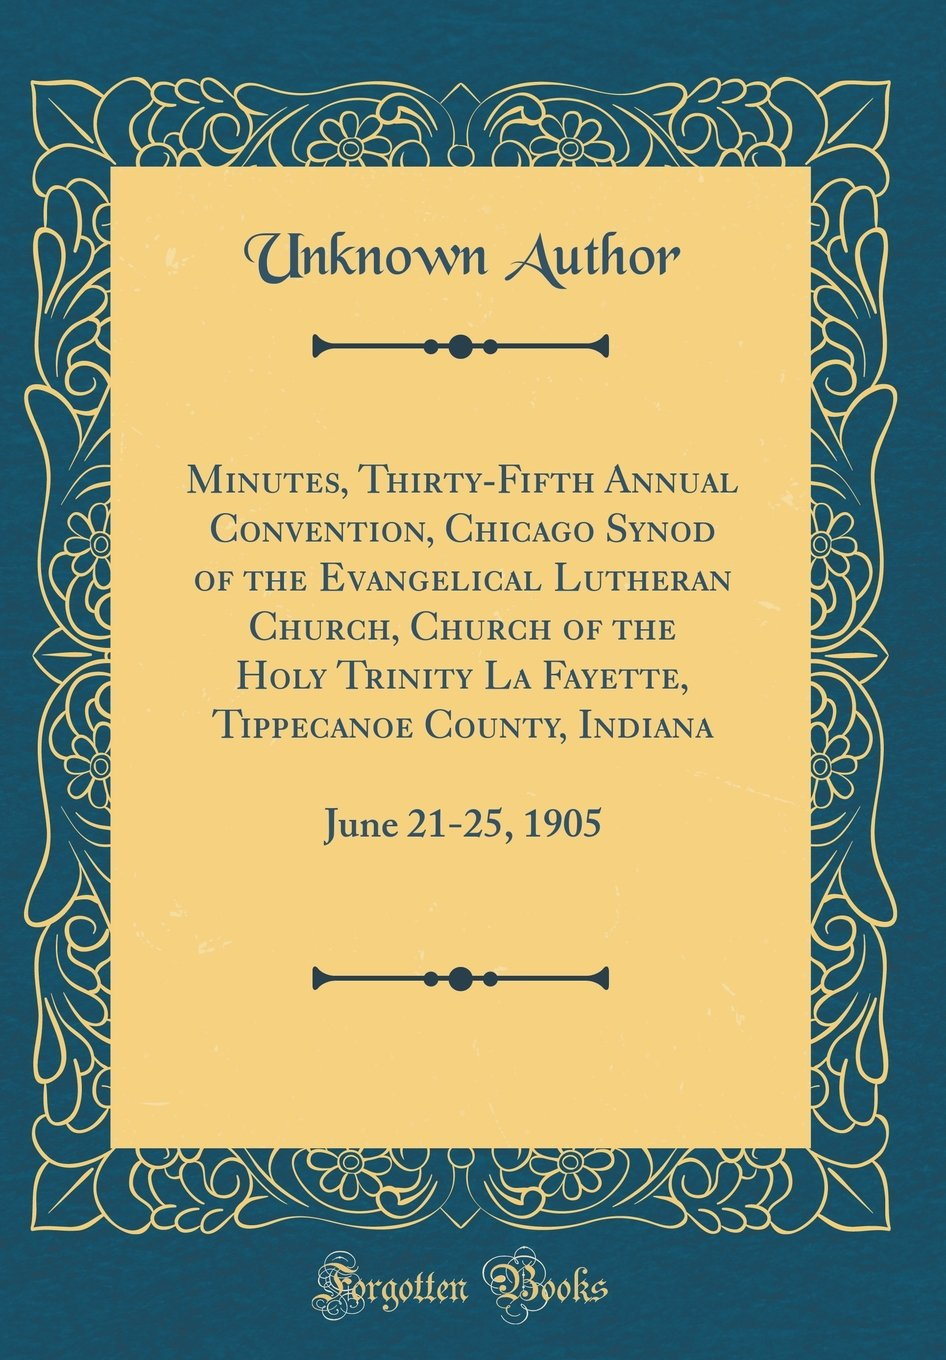 Minutes, Thirty-Fifth Annual Convention, Chicago Synod of the Evangelical Lutheran Church, Church of the Holy Trinity La Fayette, Tippecanoe County, Indiana: June 21-25, 1905 (Classic Reprint) pdf